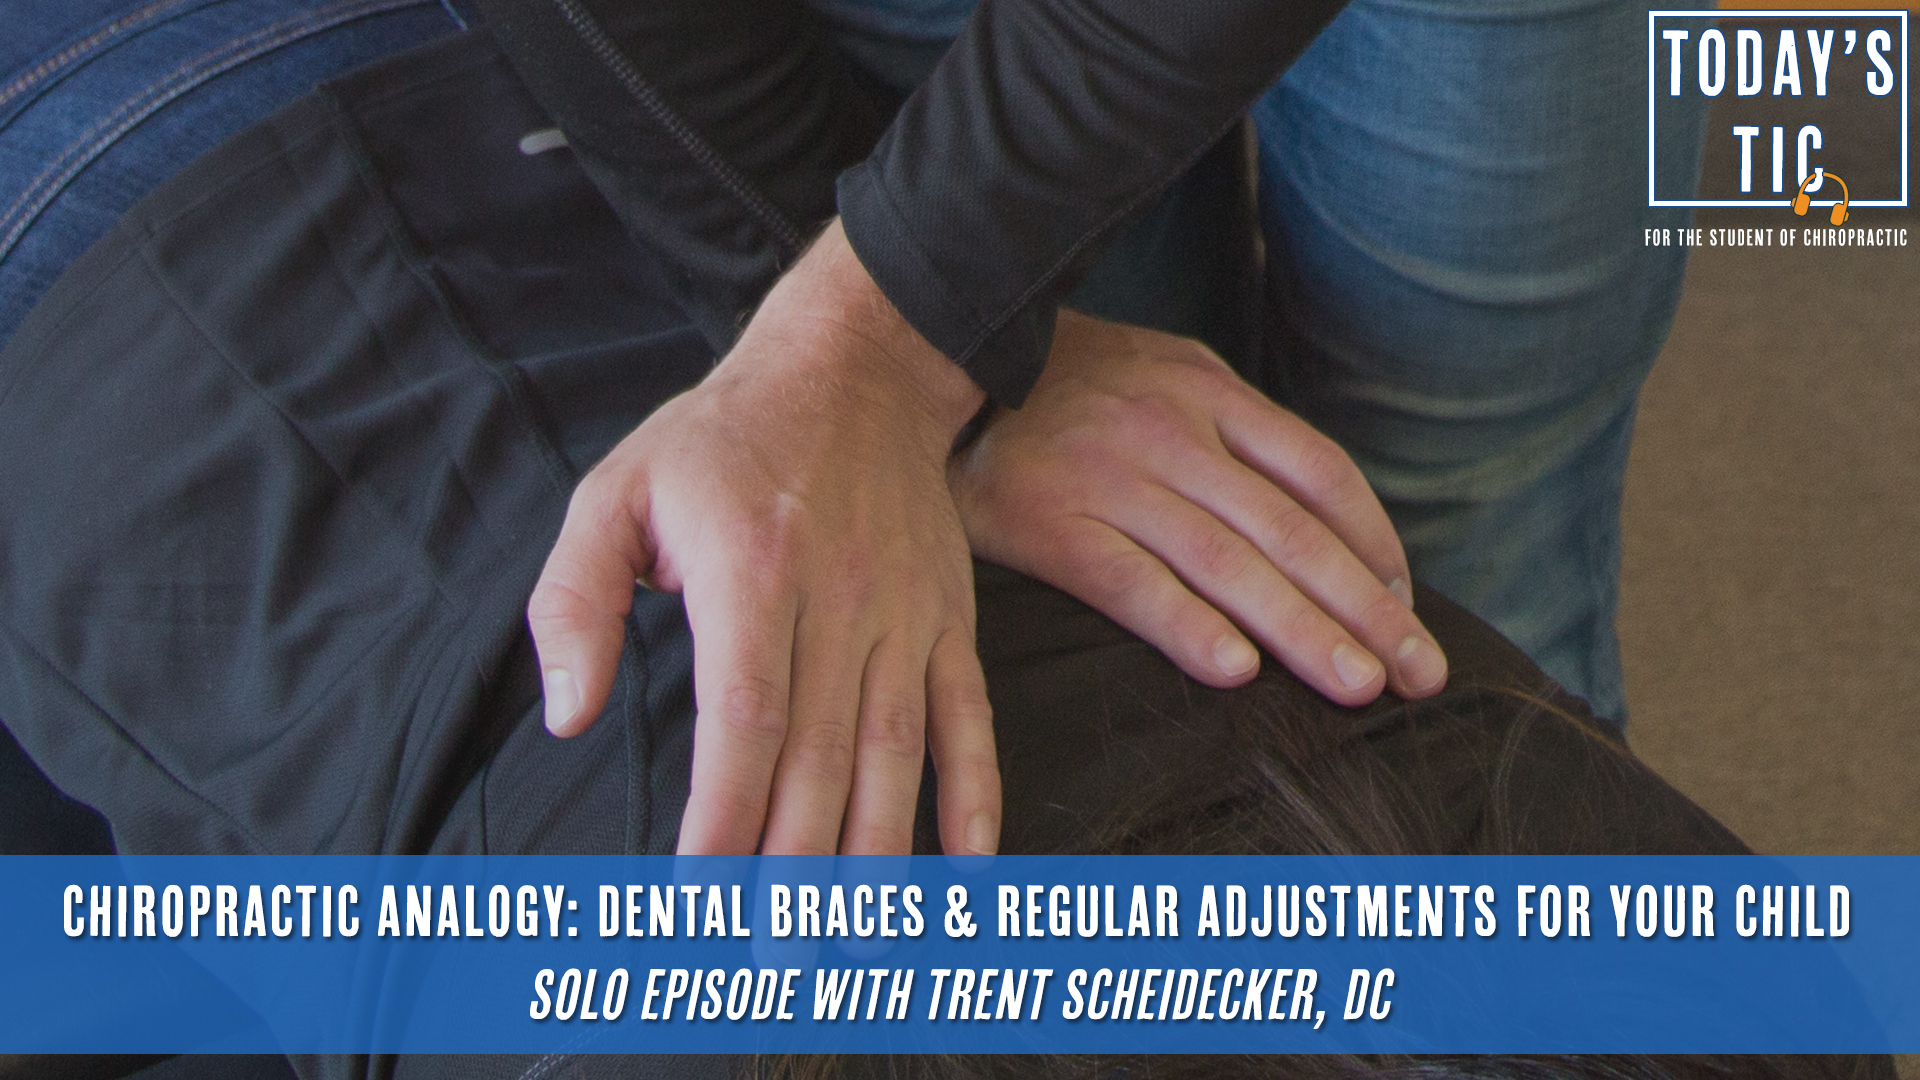 Dental Braces & Regular Adjustments for Your Child - Chiropractic Analogy